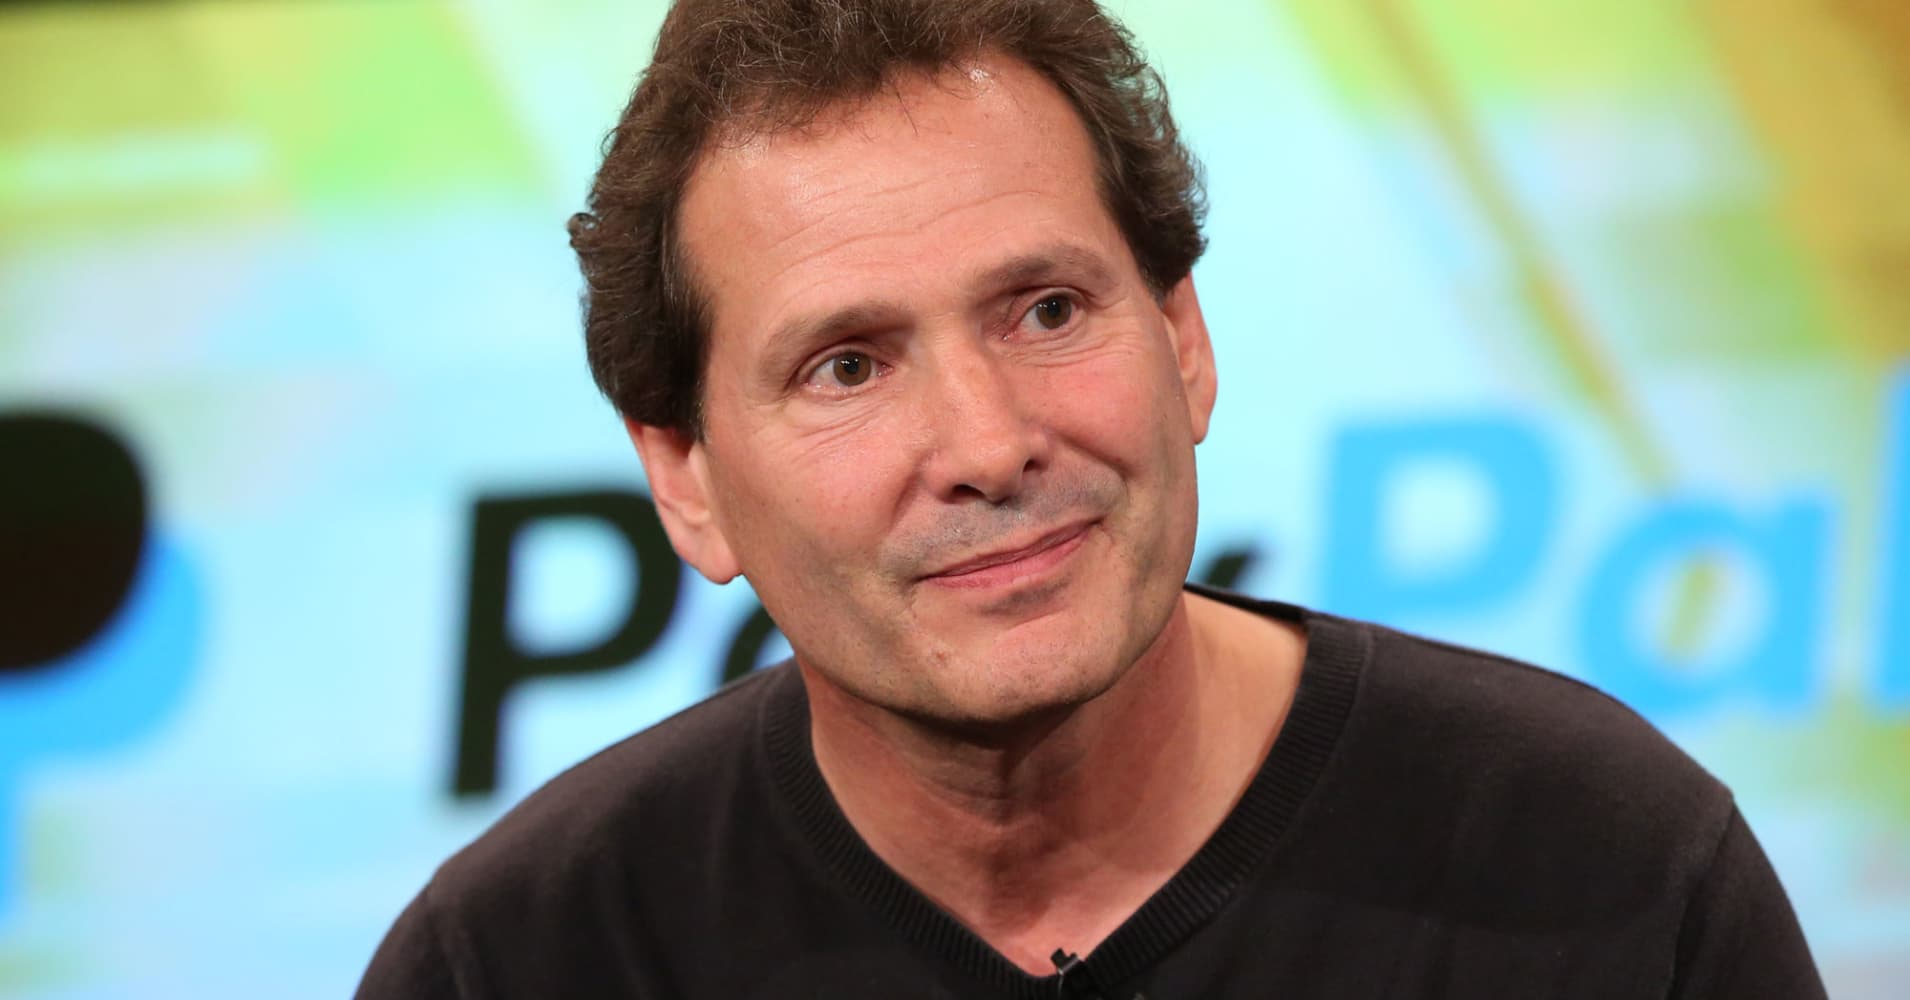 PayPal Earnings: 46 Cents Per Share Vs. 43 Cents EPS Expected